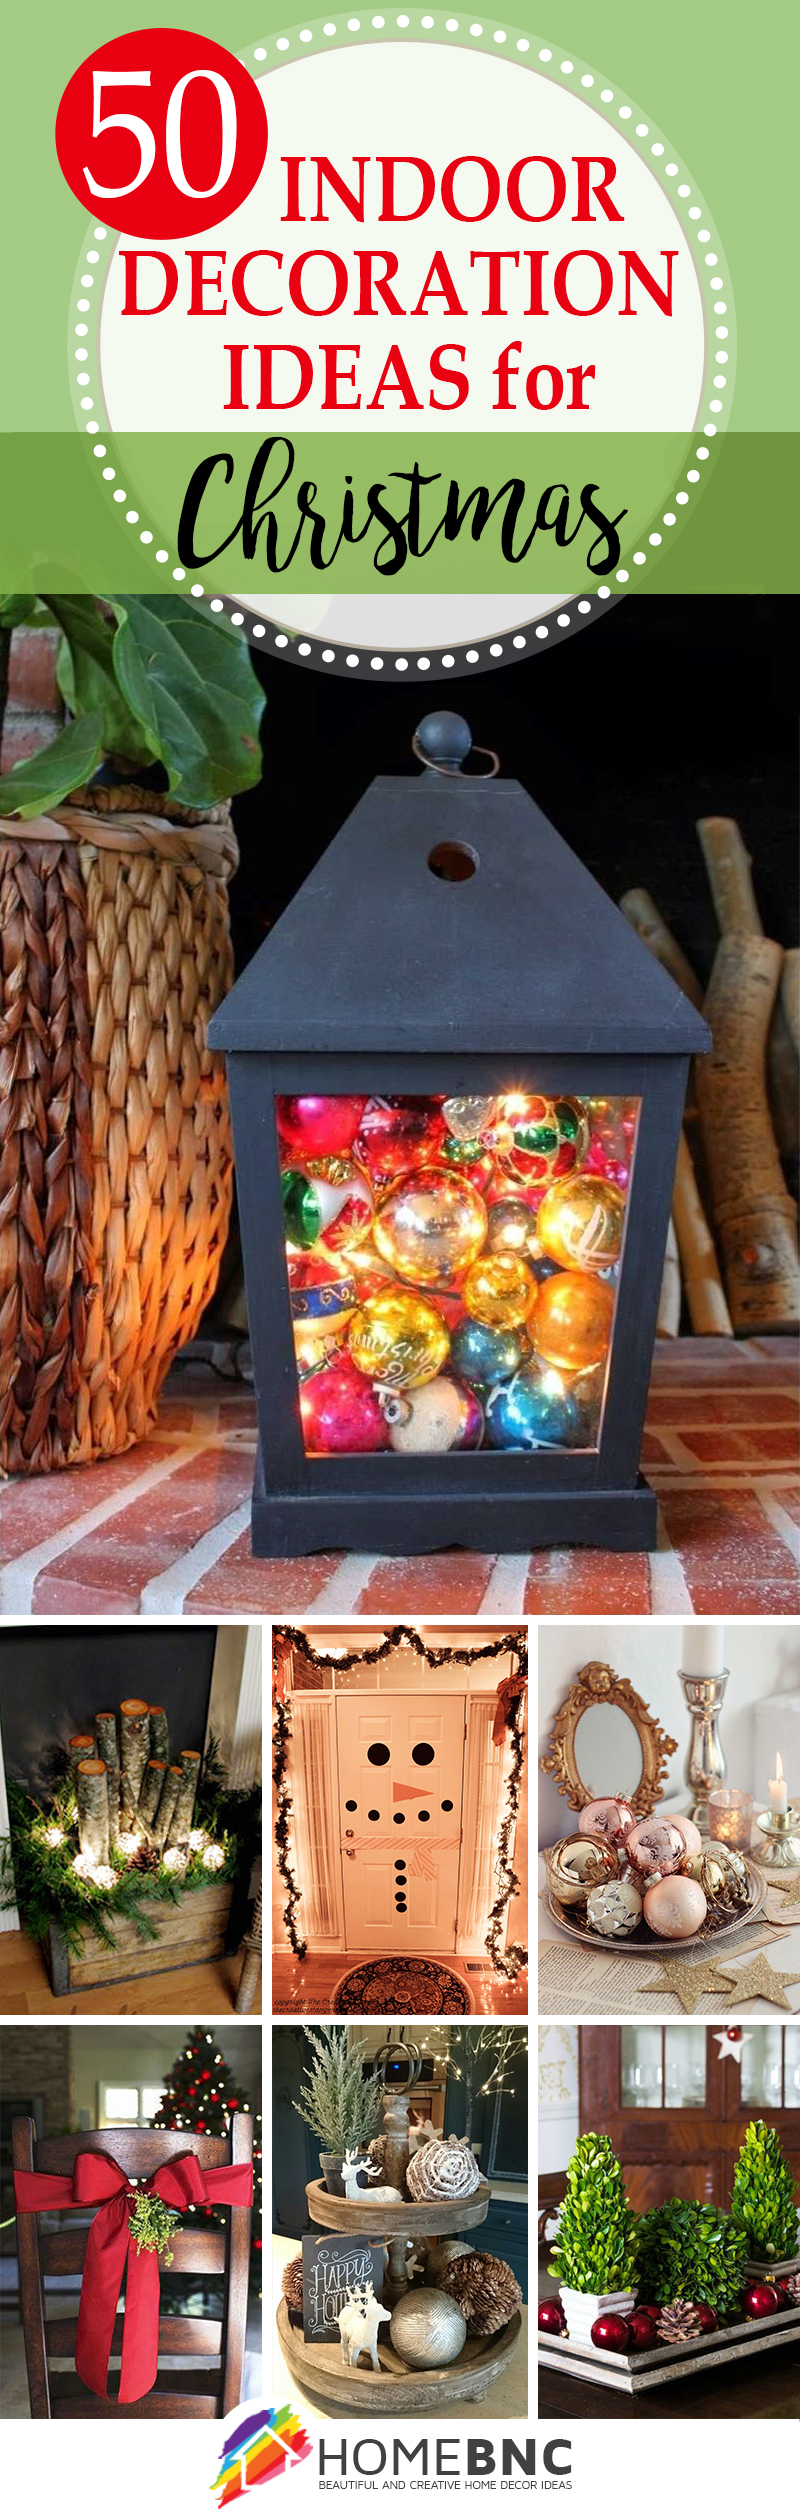 50 best indoor decoration ideas for christmas in 2017 for Christmas decorations indoor